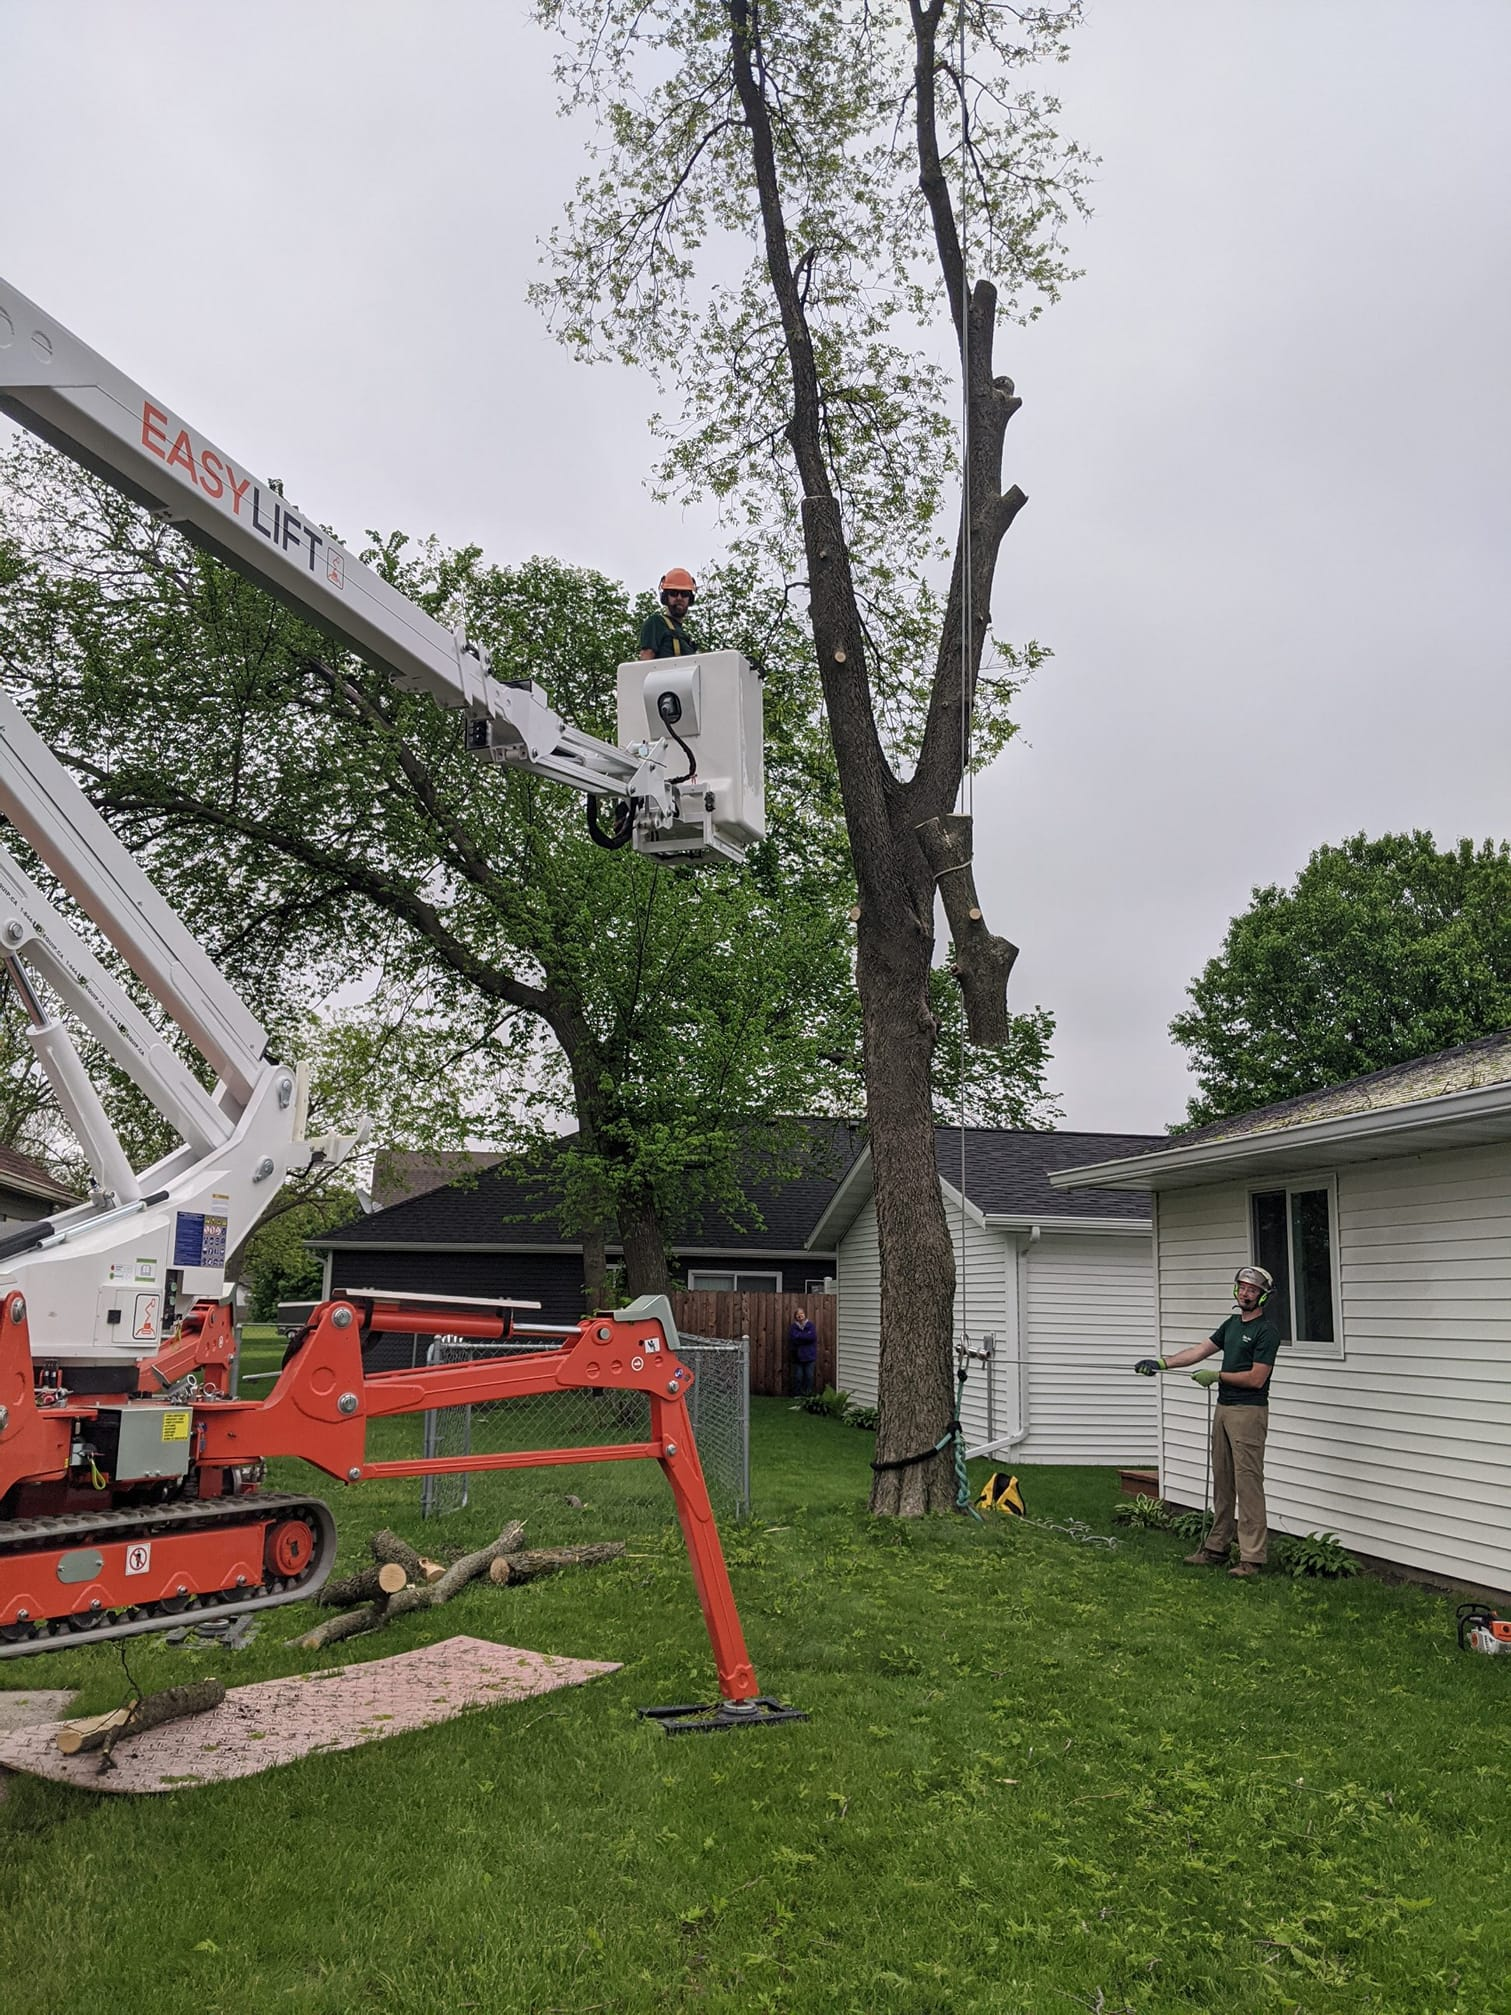 The tree care industry in the U.S. loves Easy Lift spiders!